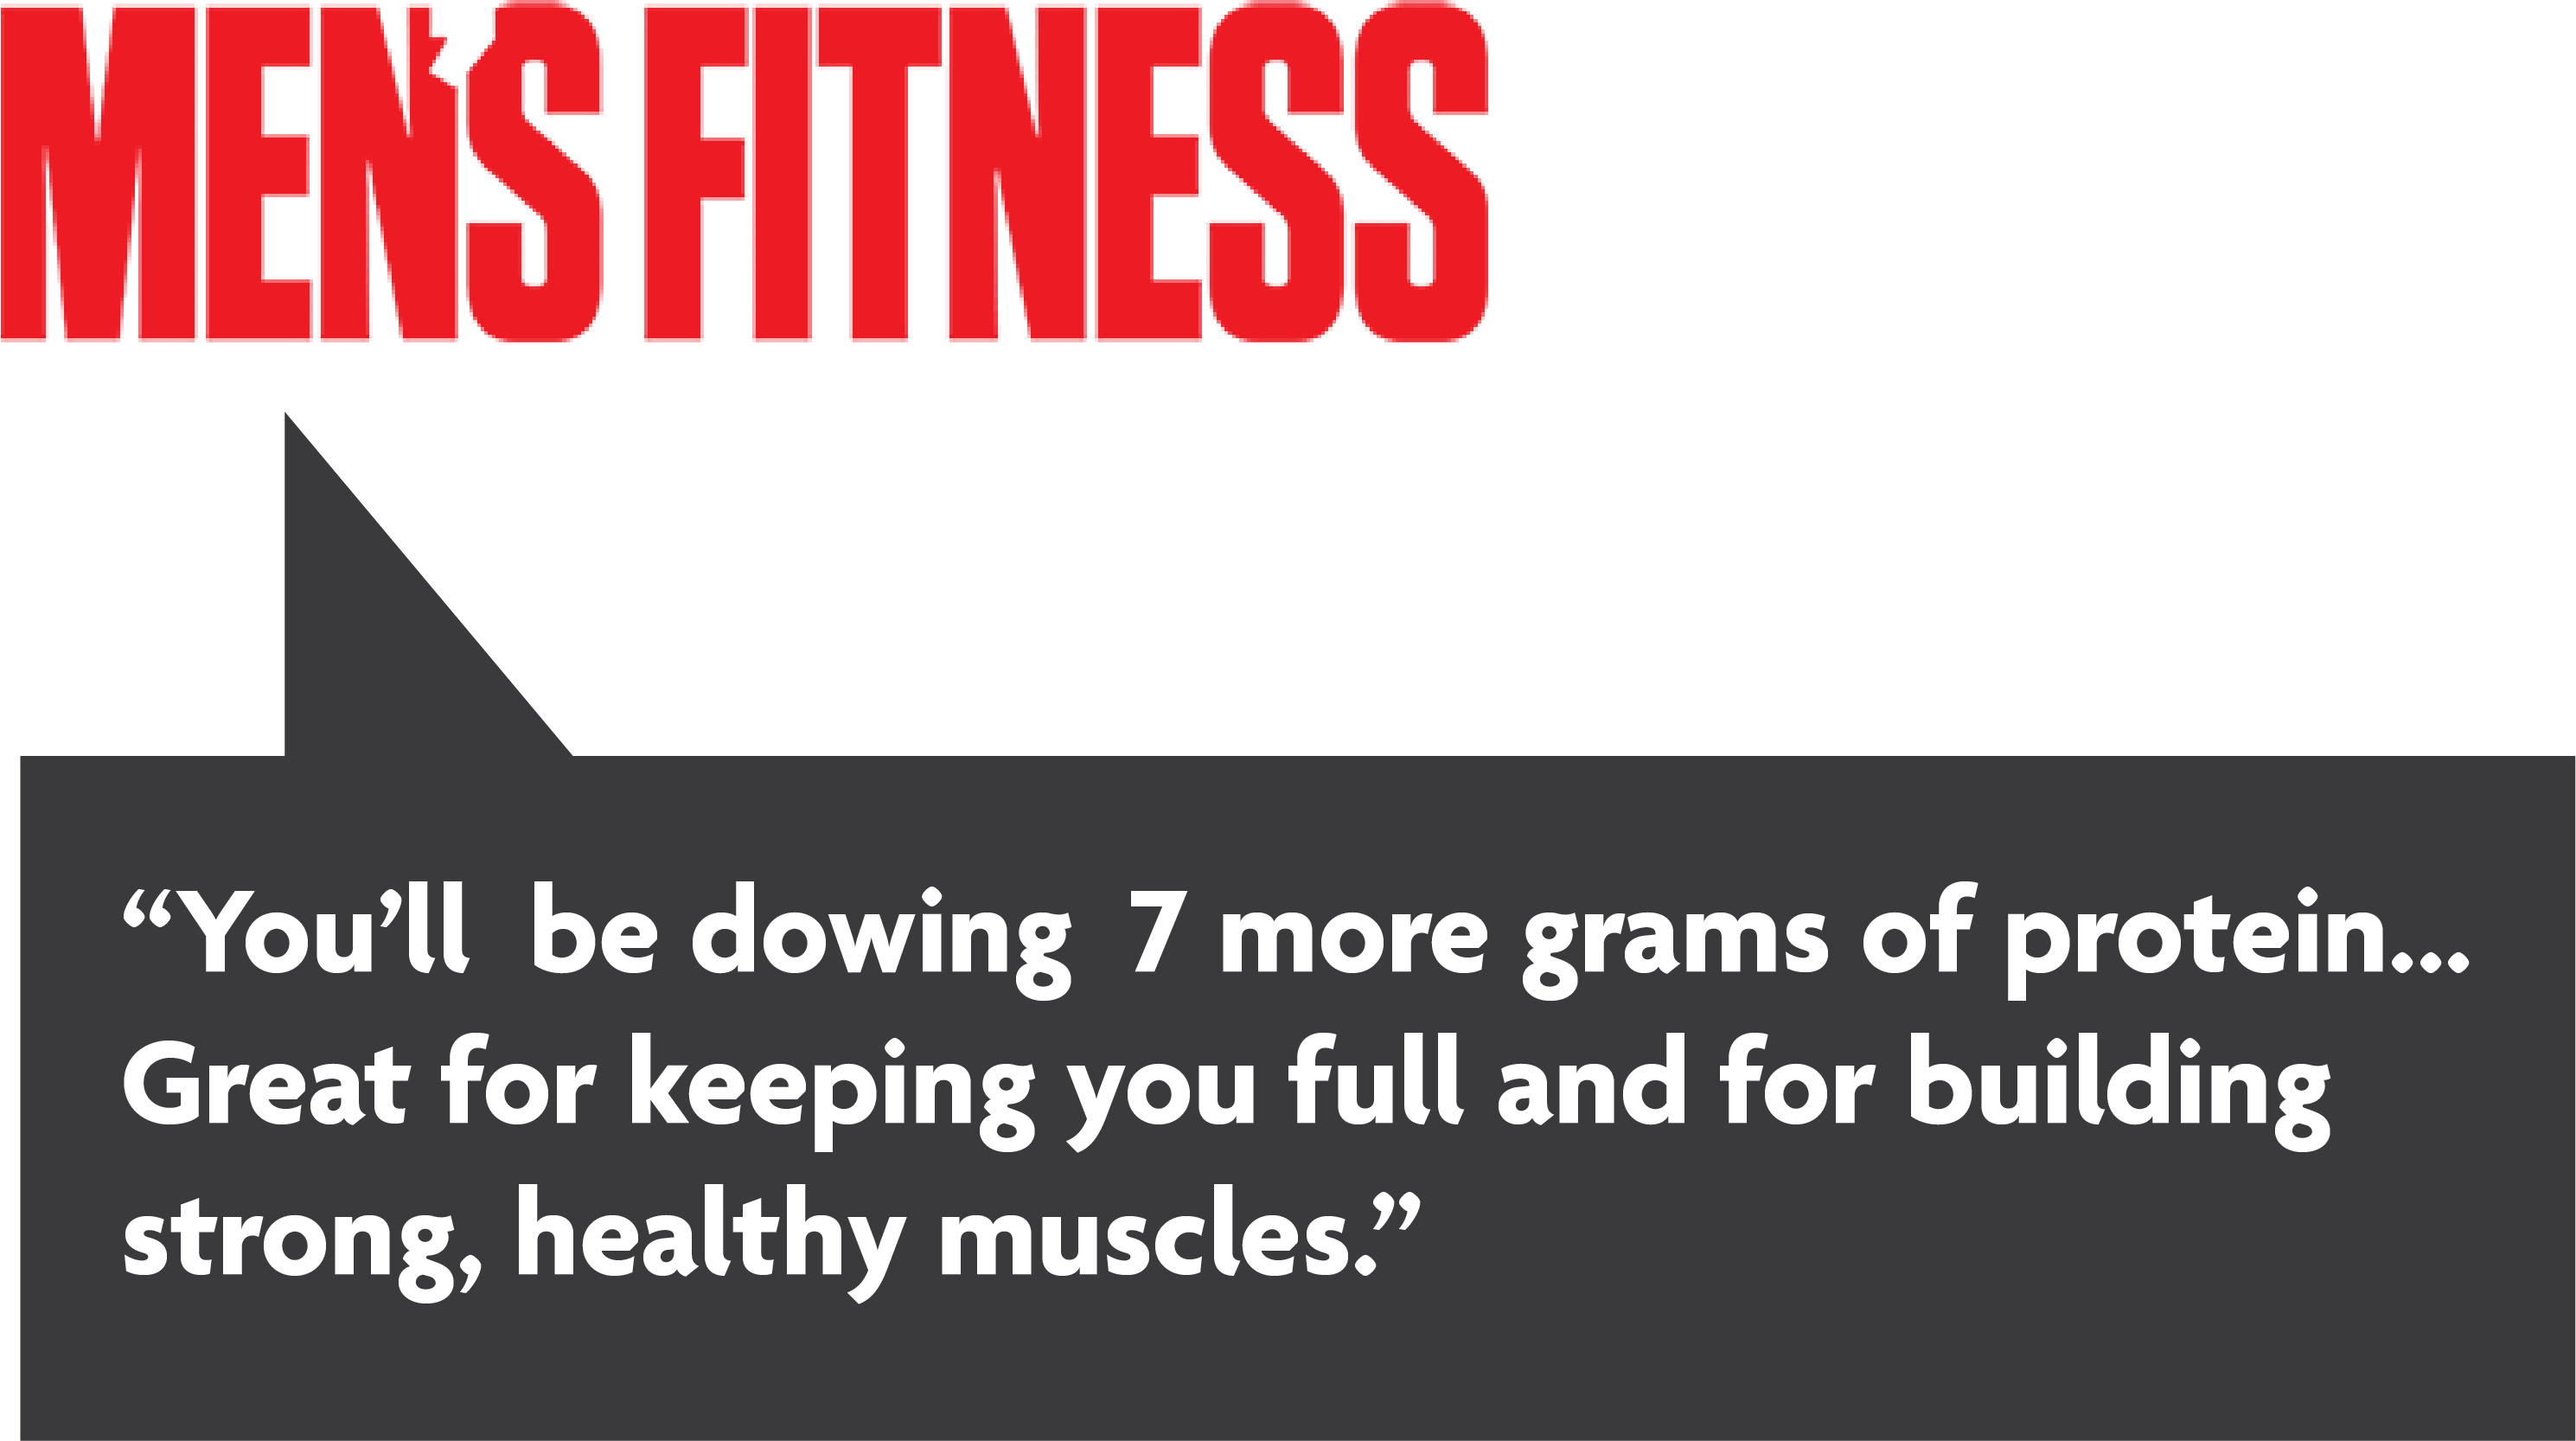 You'll be dowing 7 more grams of protein... great for keeping you full and for building strong, healthy muscles.